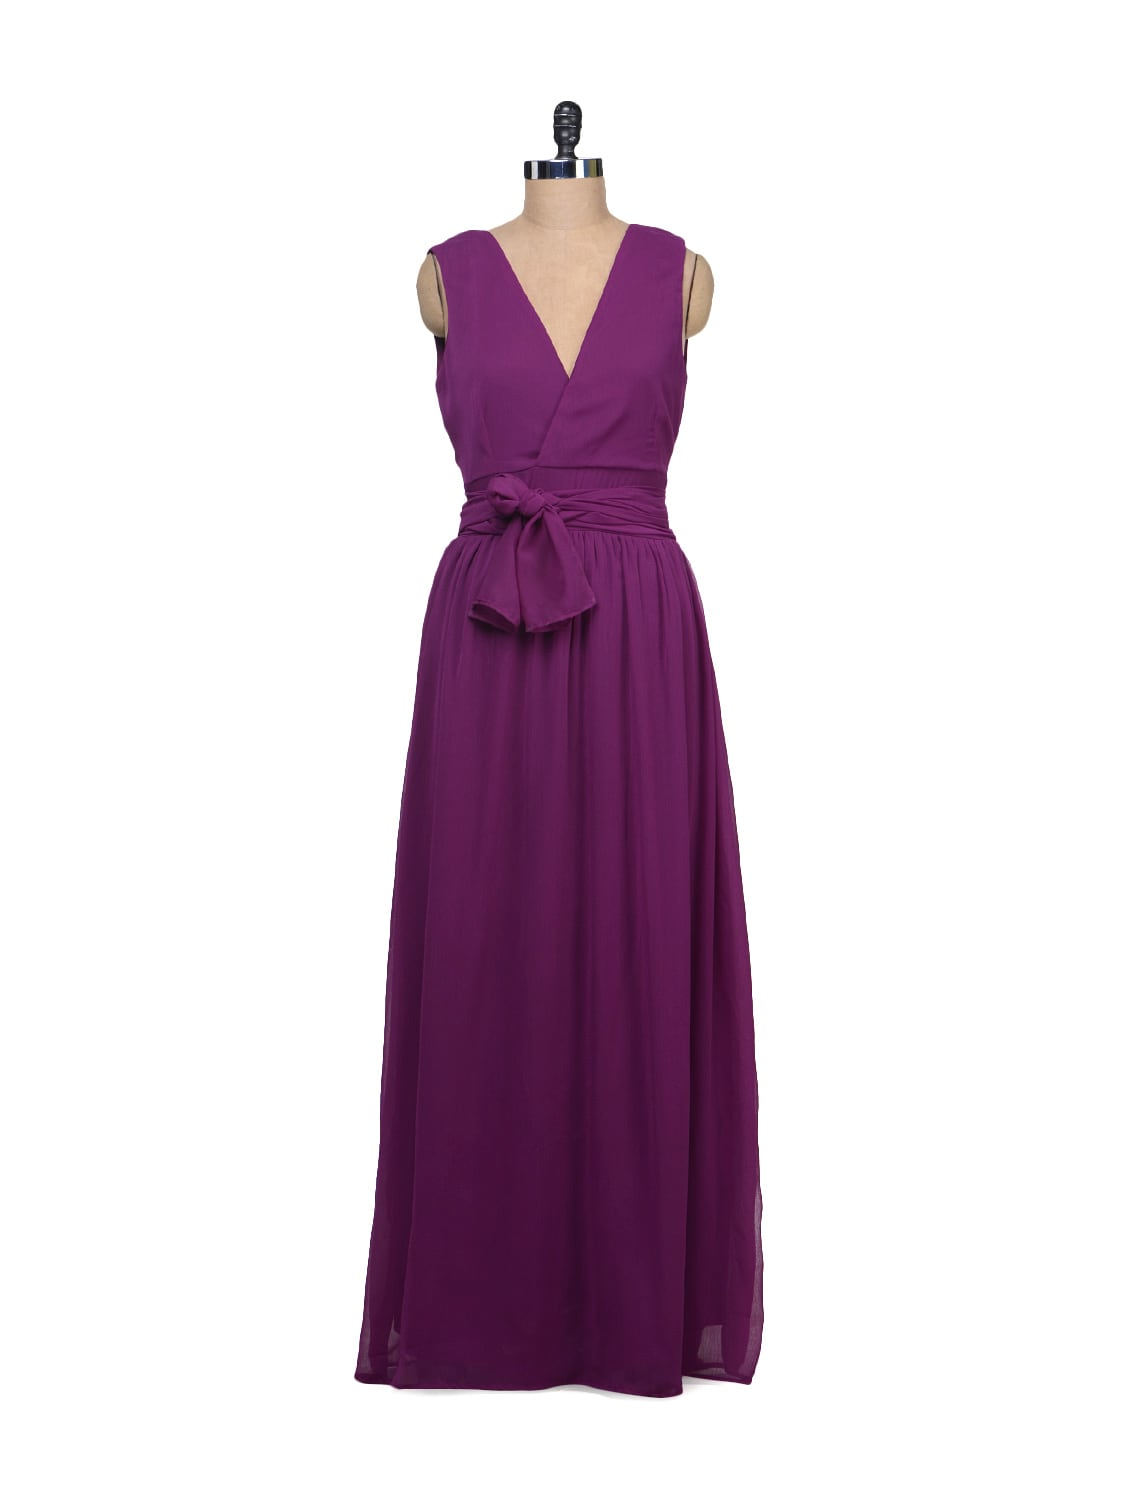 Wrap Purple Dress With Plunging Back - Liebemode